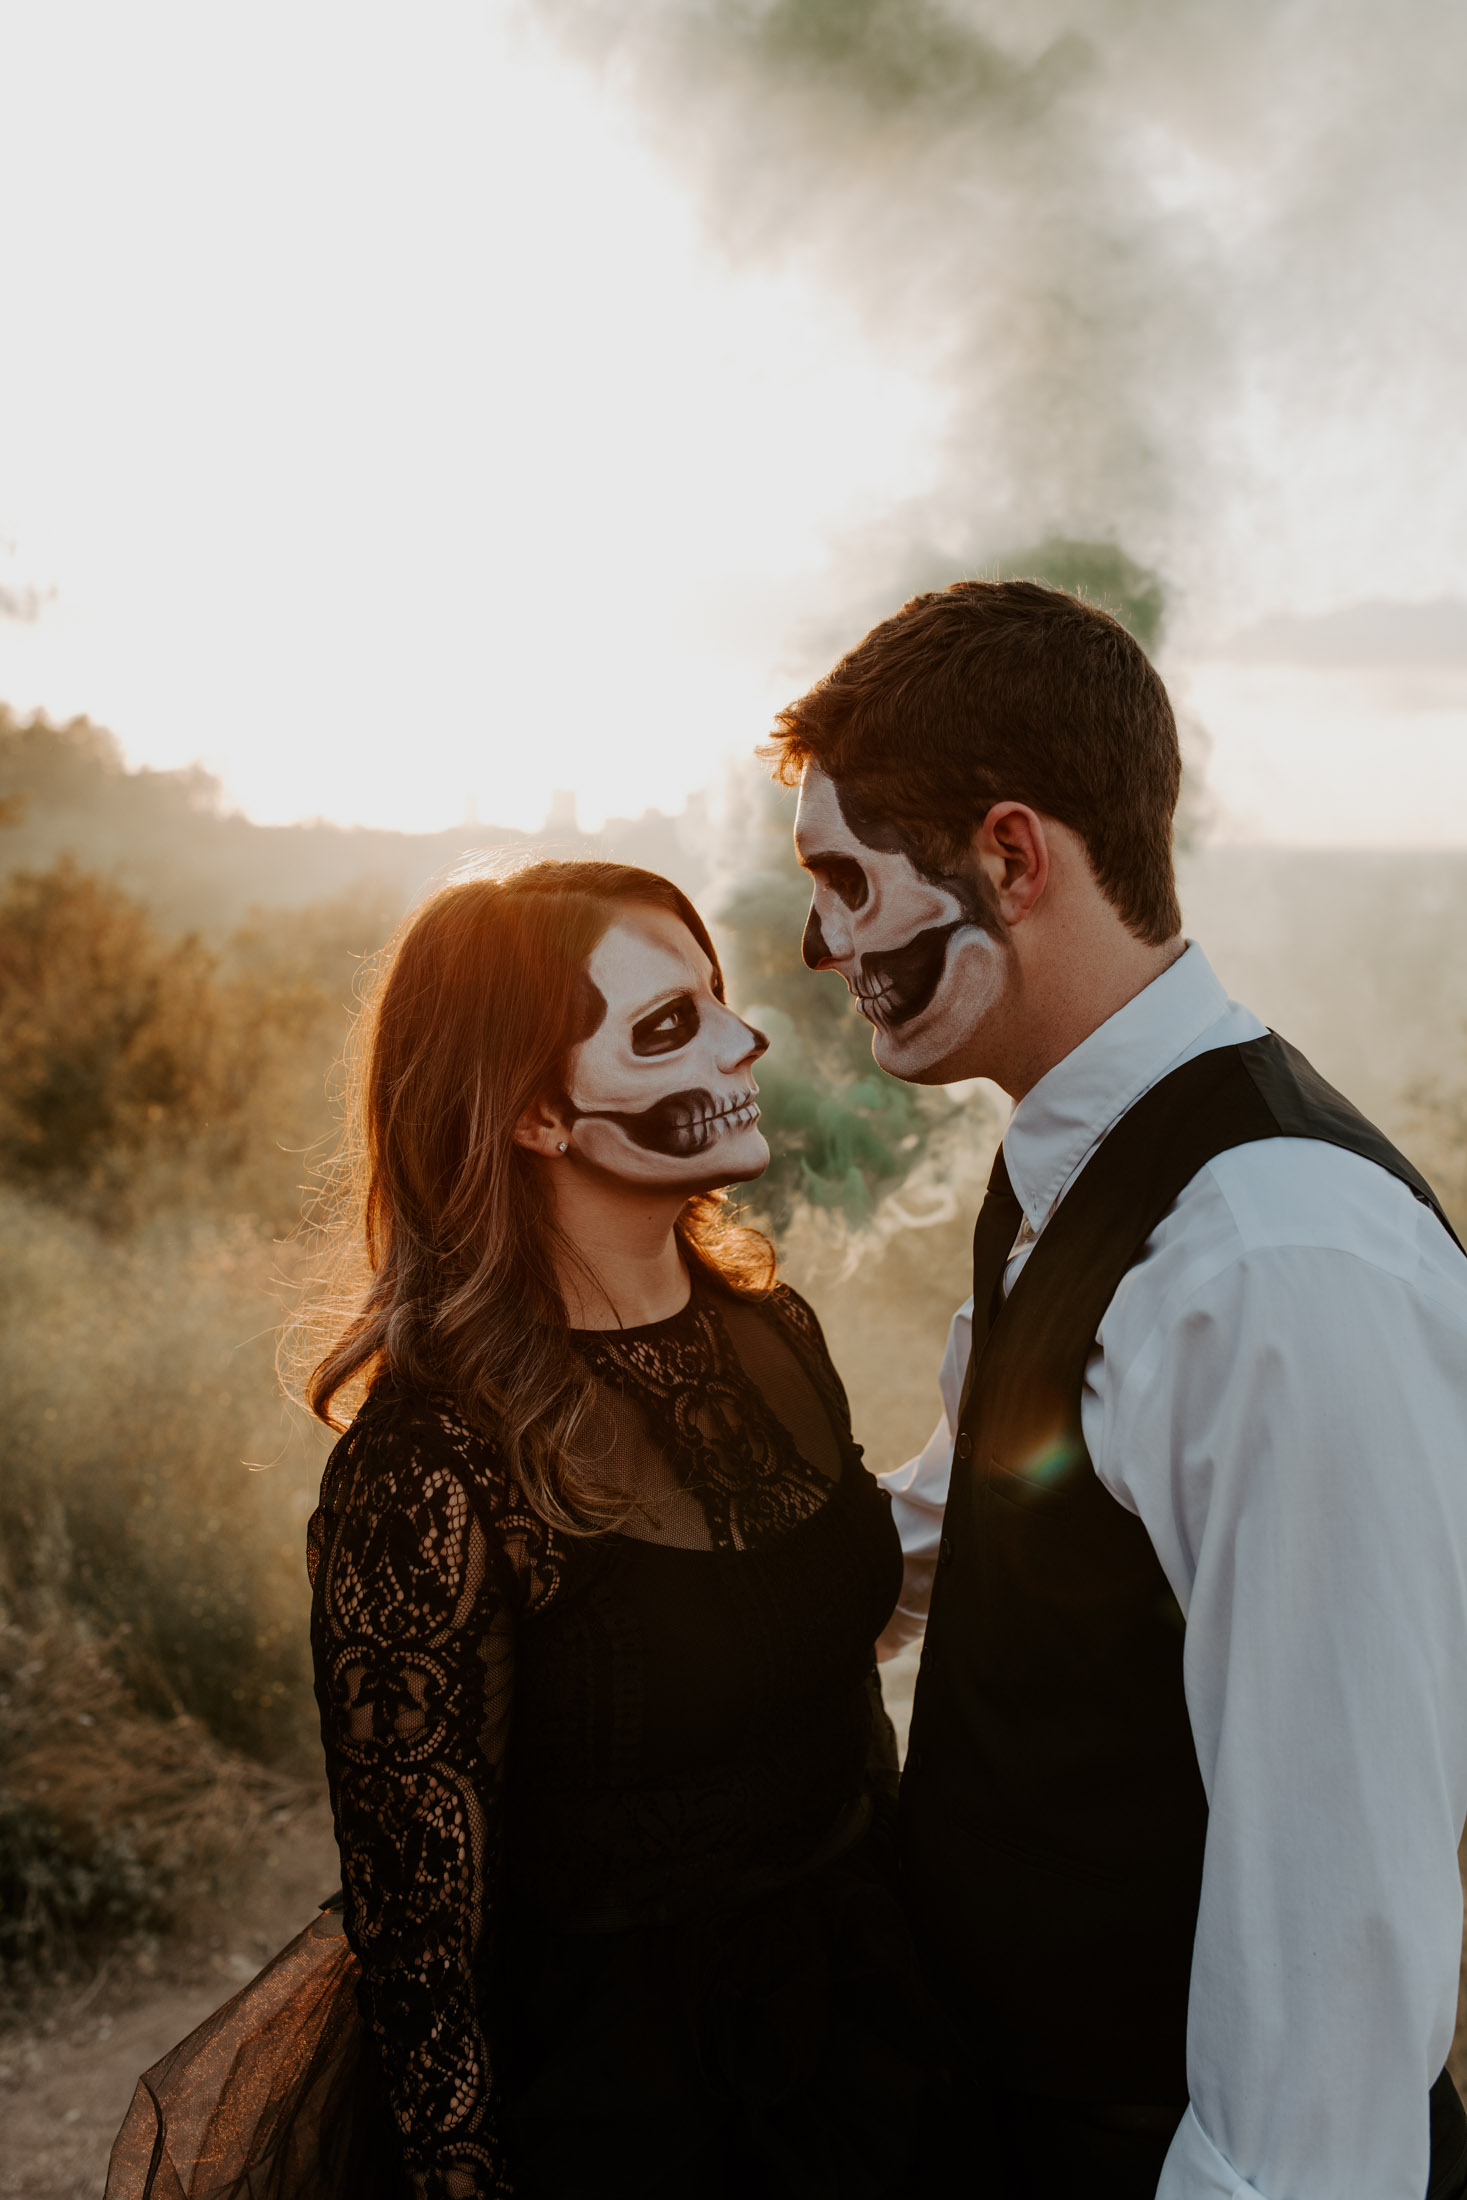 smoke bomb Fort Worth themed couples photography for halloween session